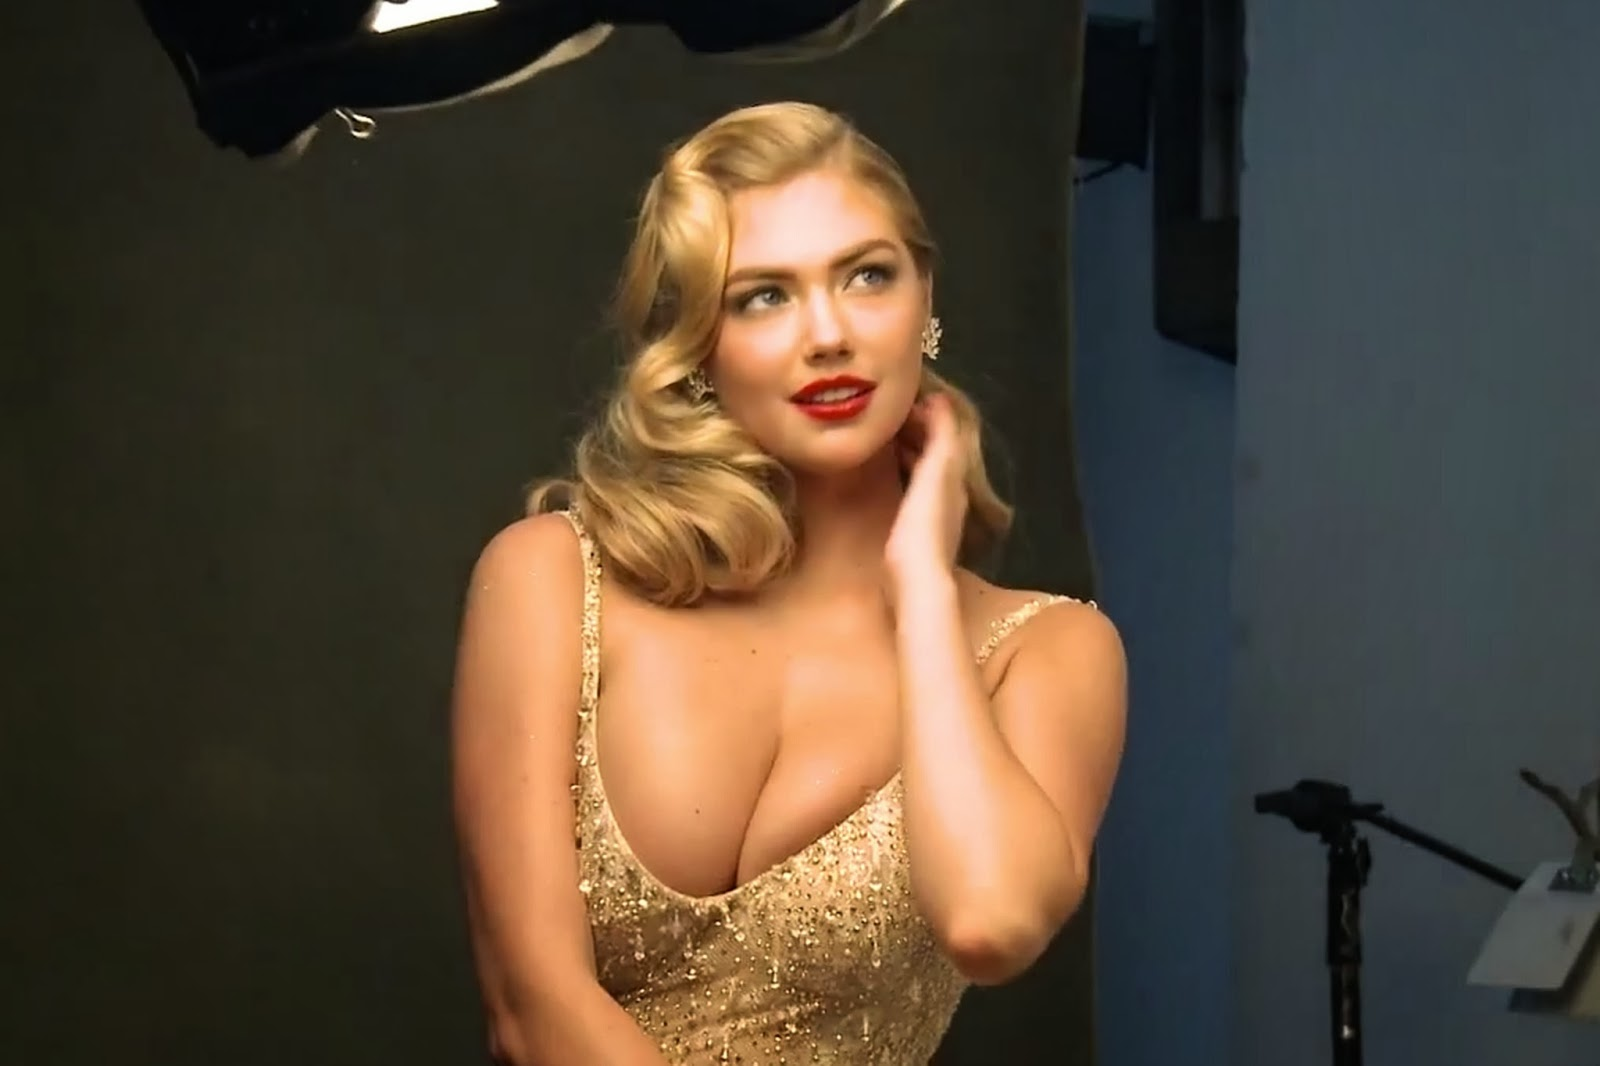 Kate upton bouncing boobs 4